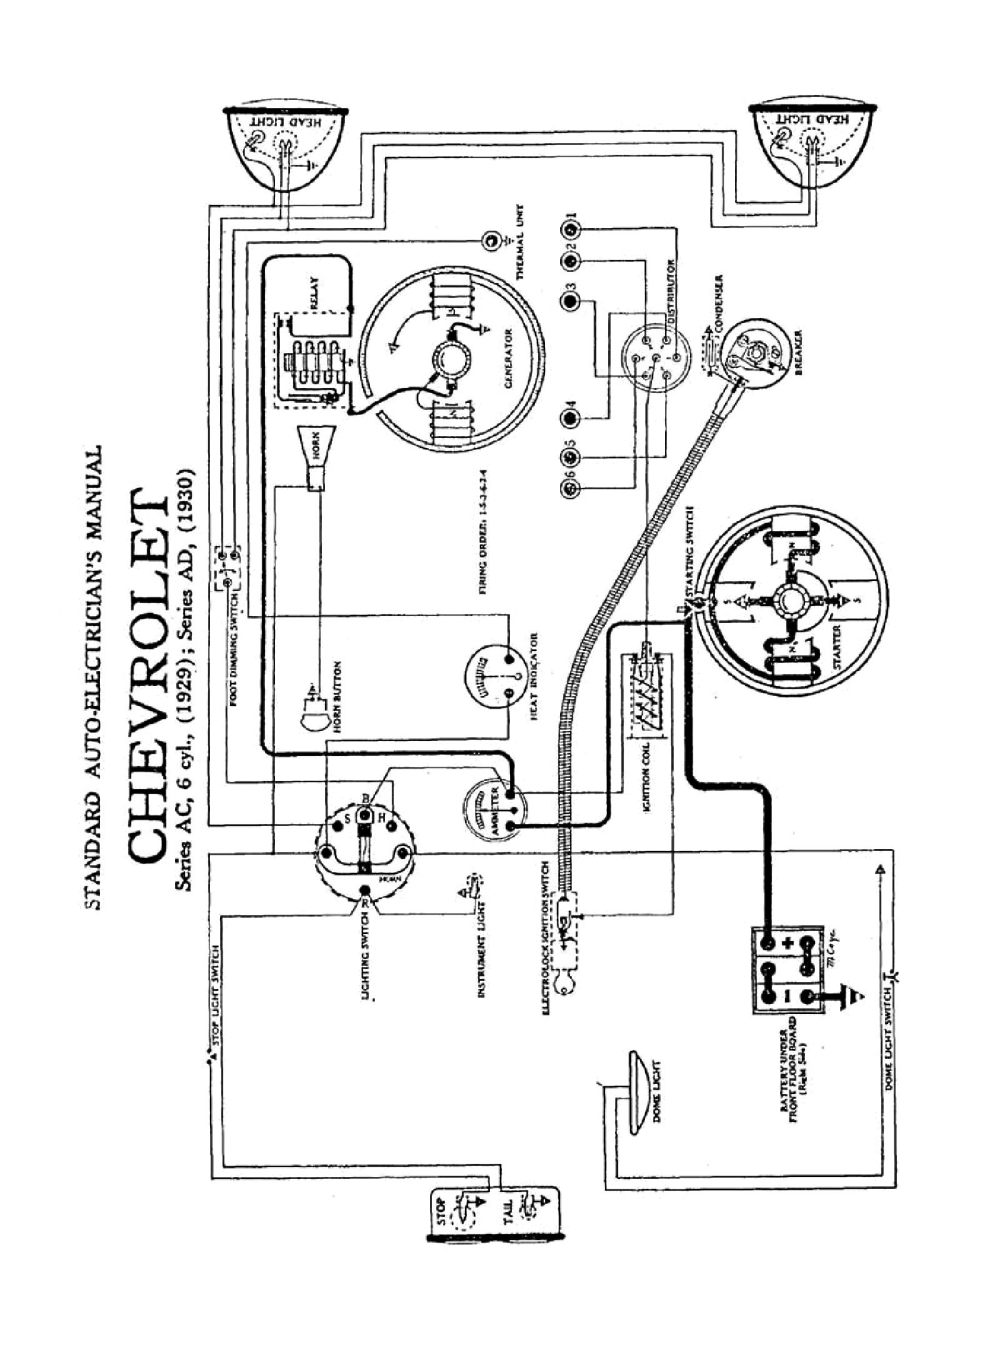 medium resolution of 1946 chevy 235 engine oil filter moreover 1990 chevy g20 van wiring chevy 235 inline 6 235 chevy engine wiring diagram